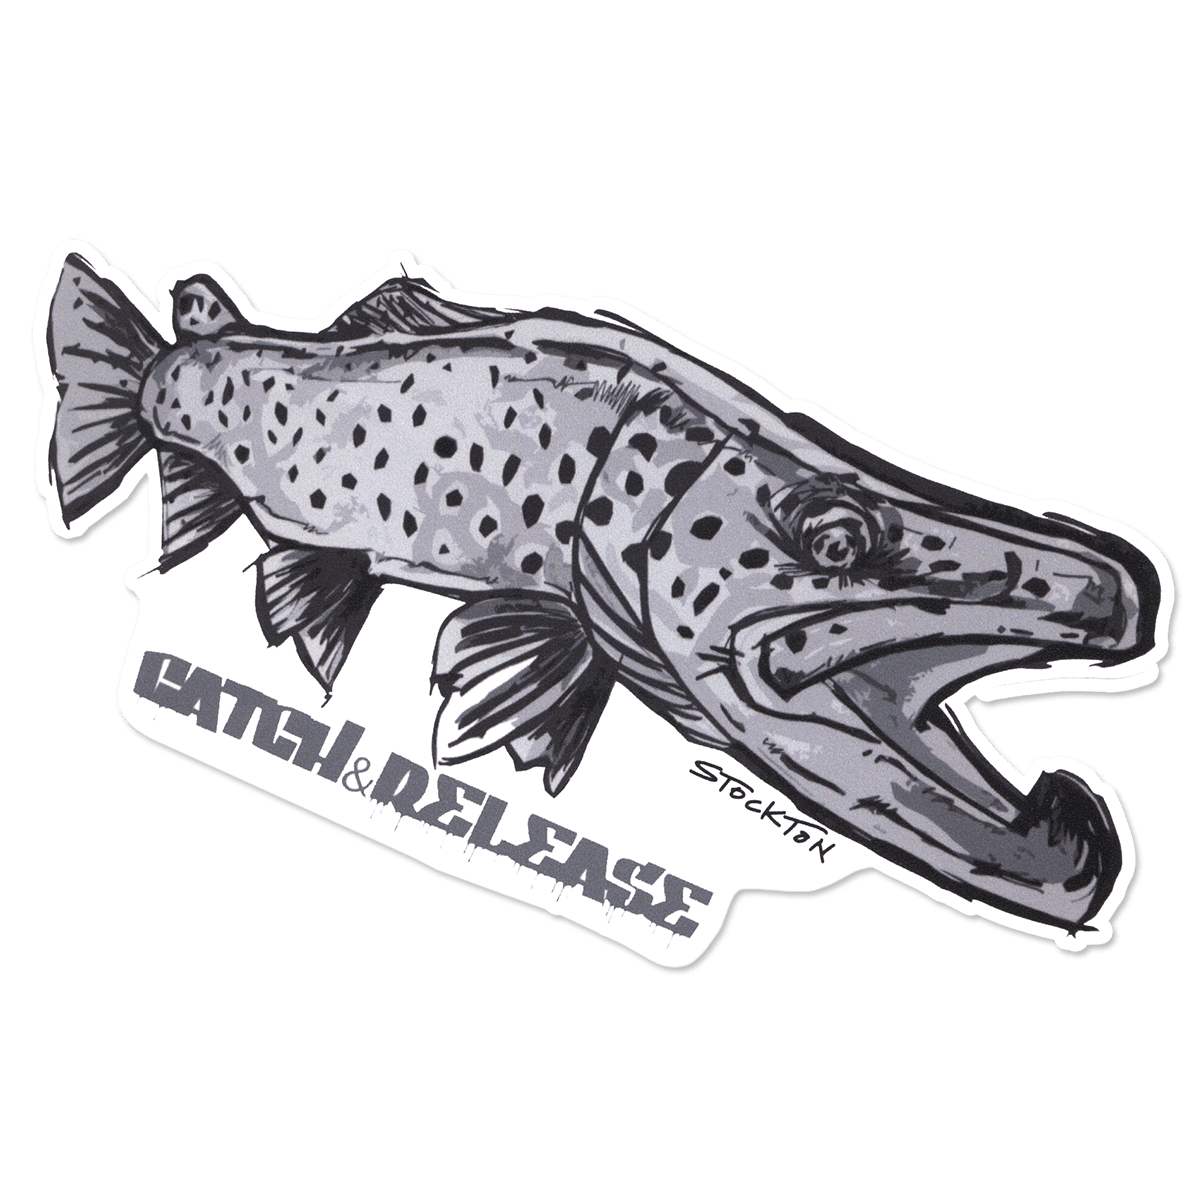 Brown Trout Catch /& Release Decal Fly Fishing Sticker